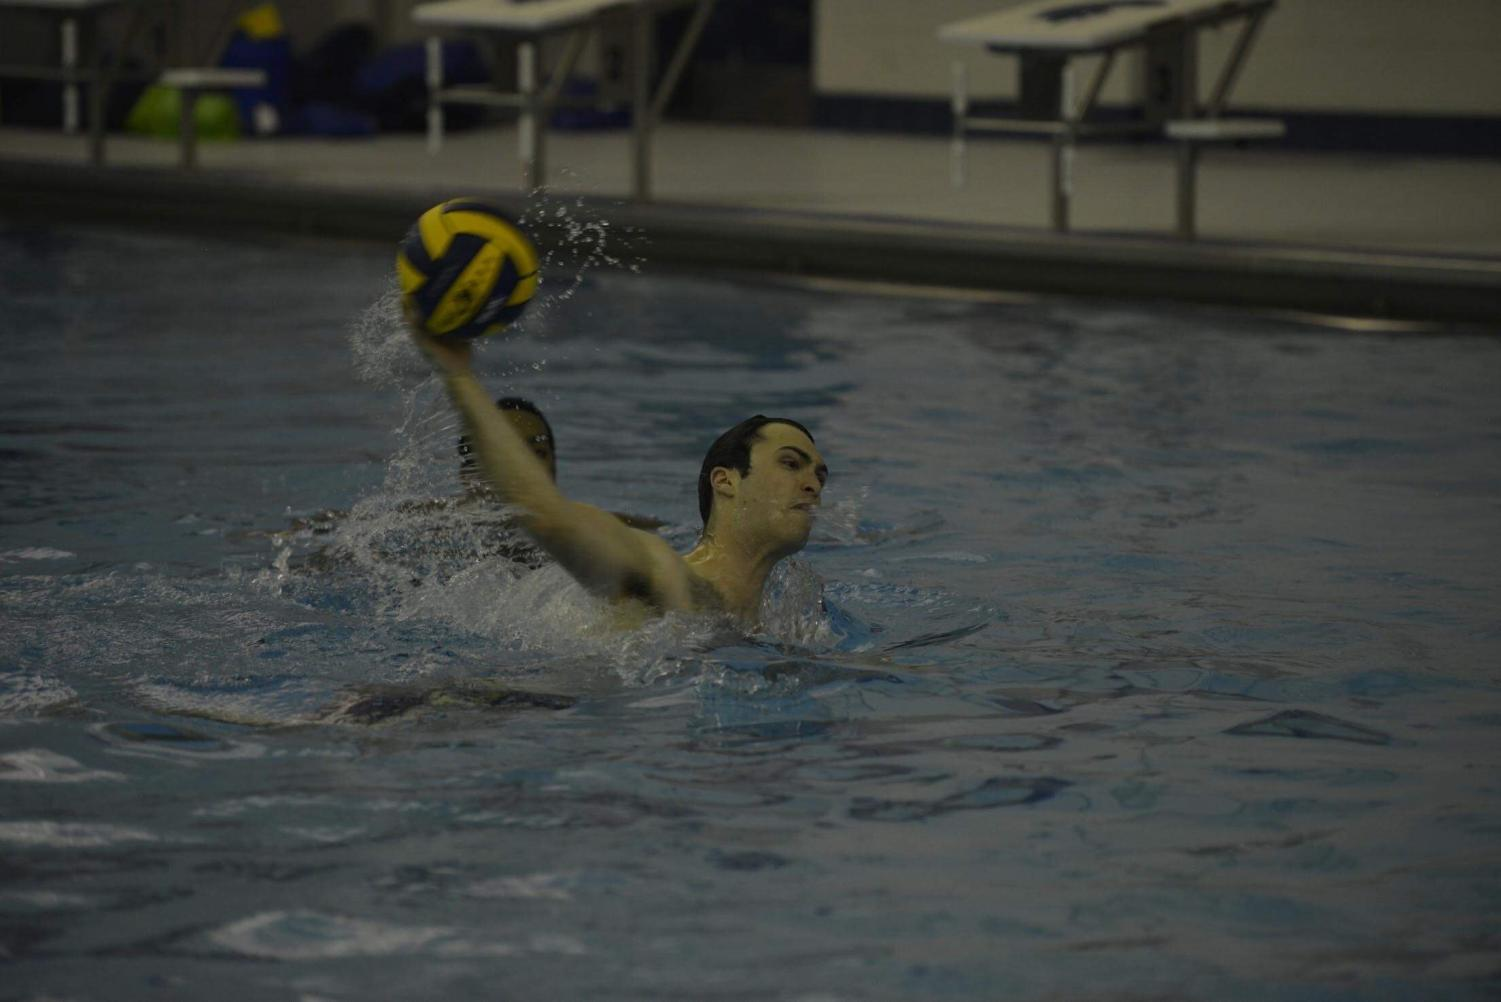 CWRU Club Water Polo will host their annual tournament on Nov. 16 starting with a game against Oakland University